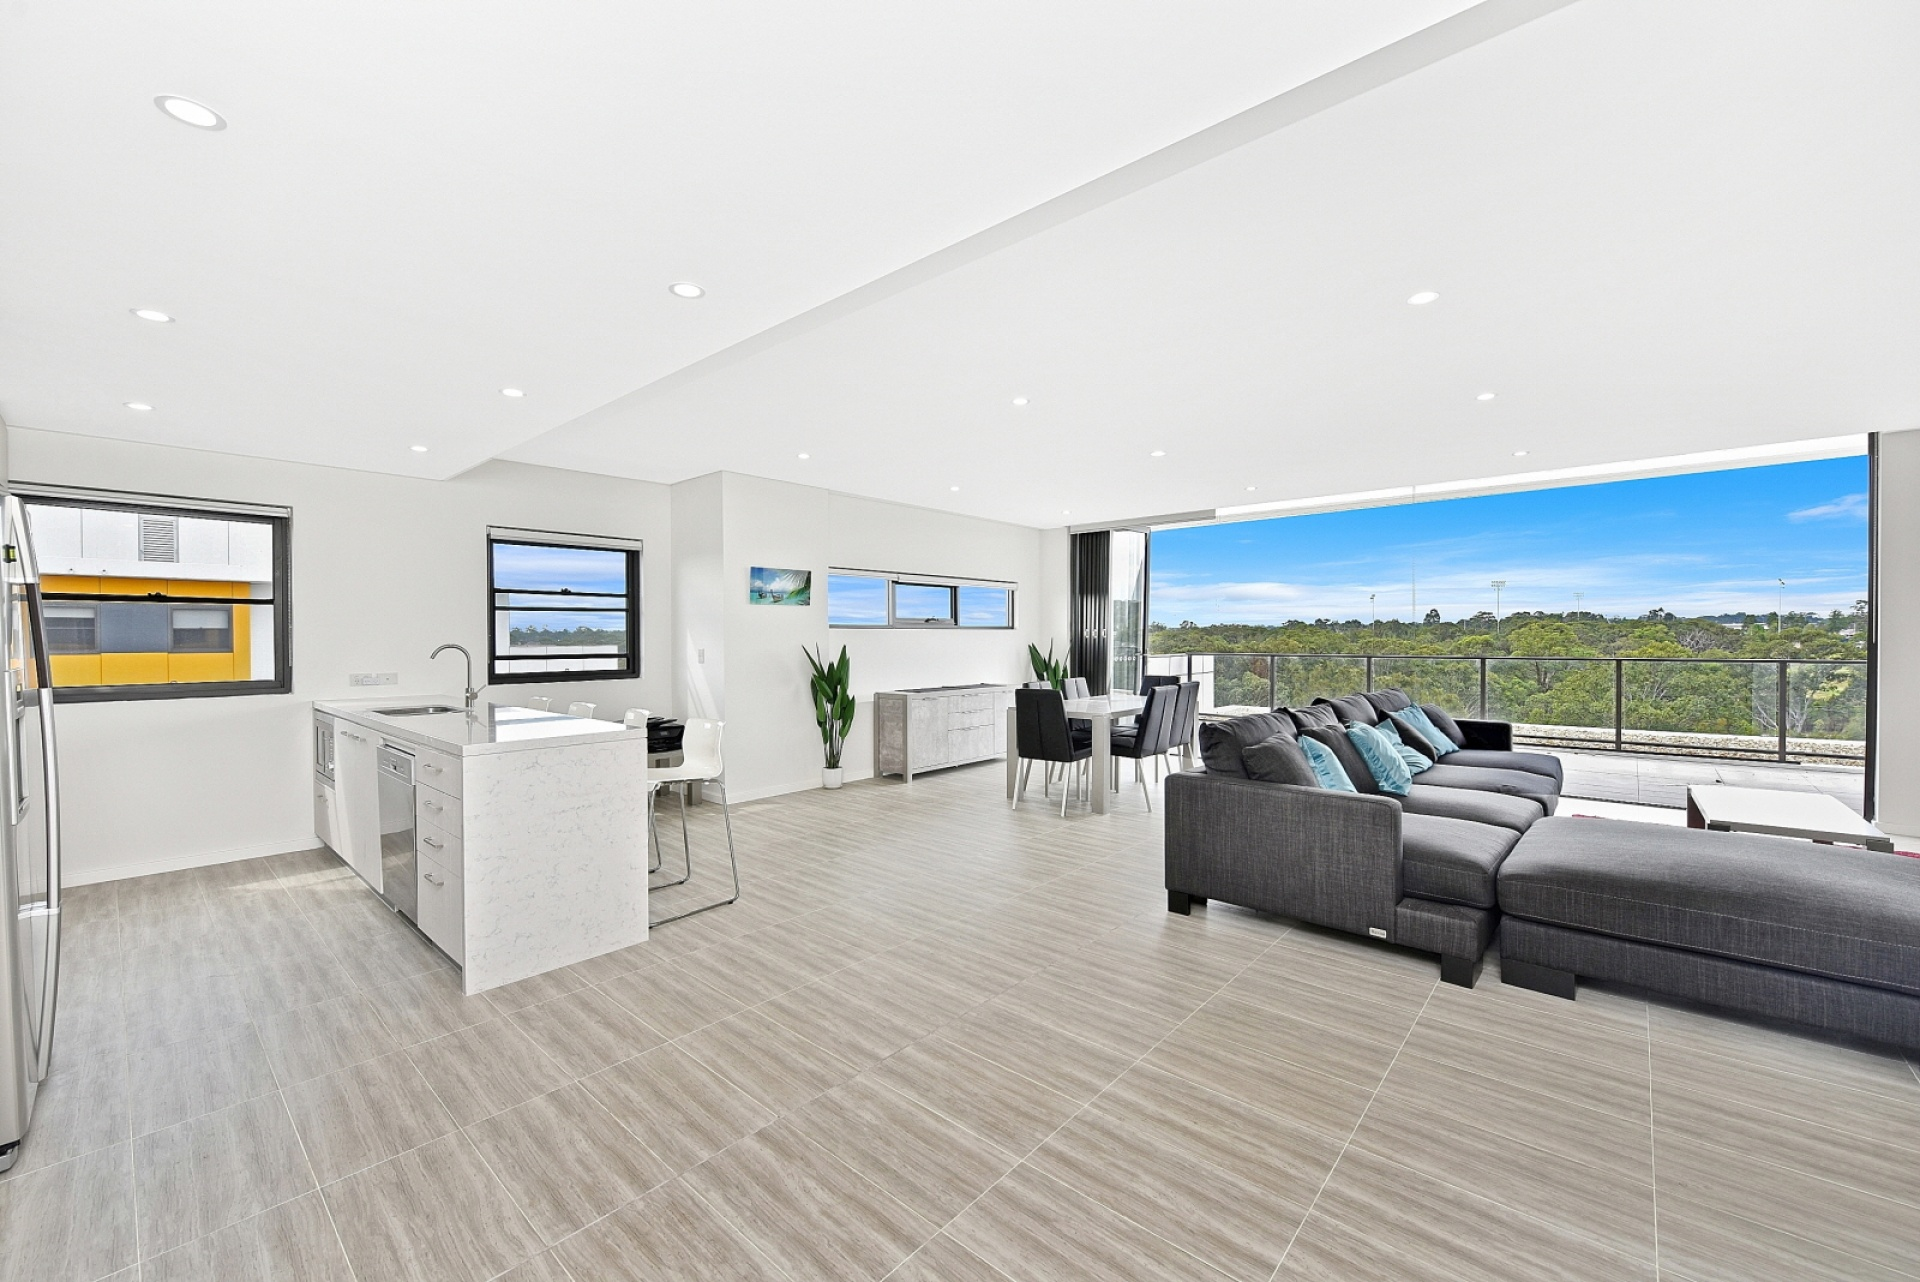 2 Bedrooms, Apartment, Sold , Caddies Boulevard, 2 Bathrooms, Listing ID 1200, Rouse Hill, NSW, Australia,